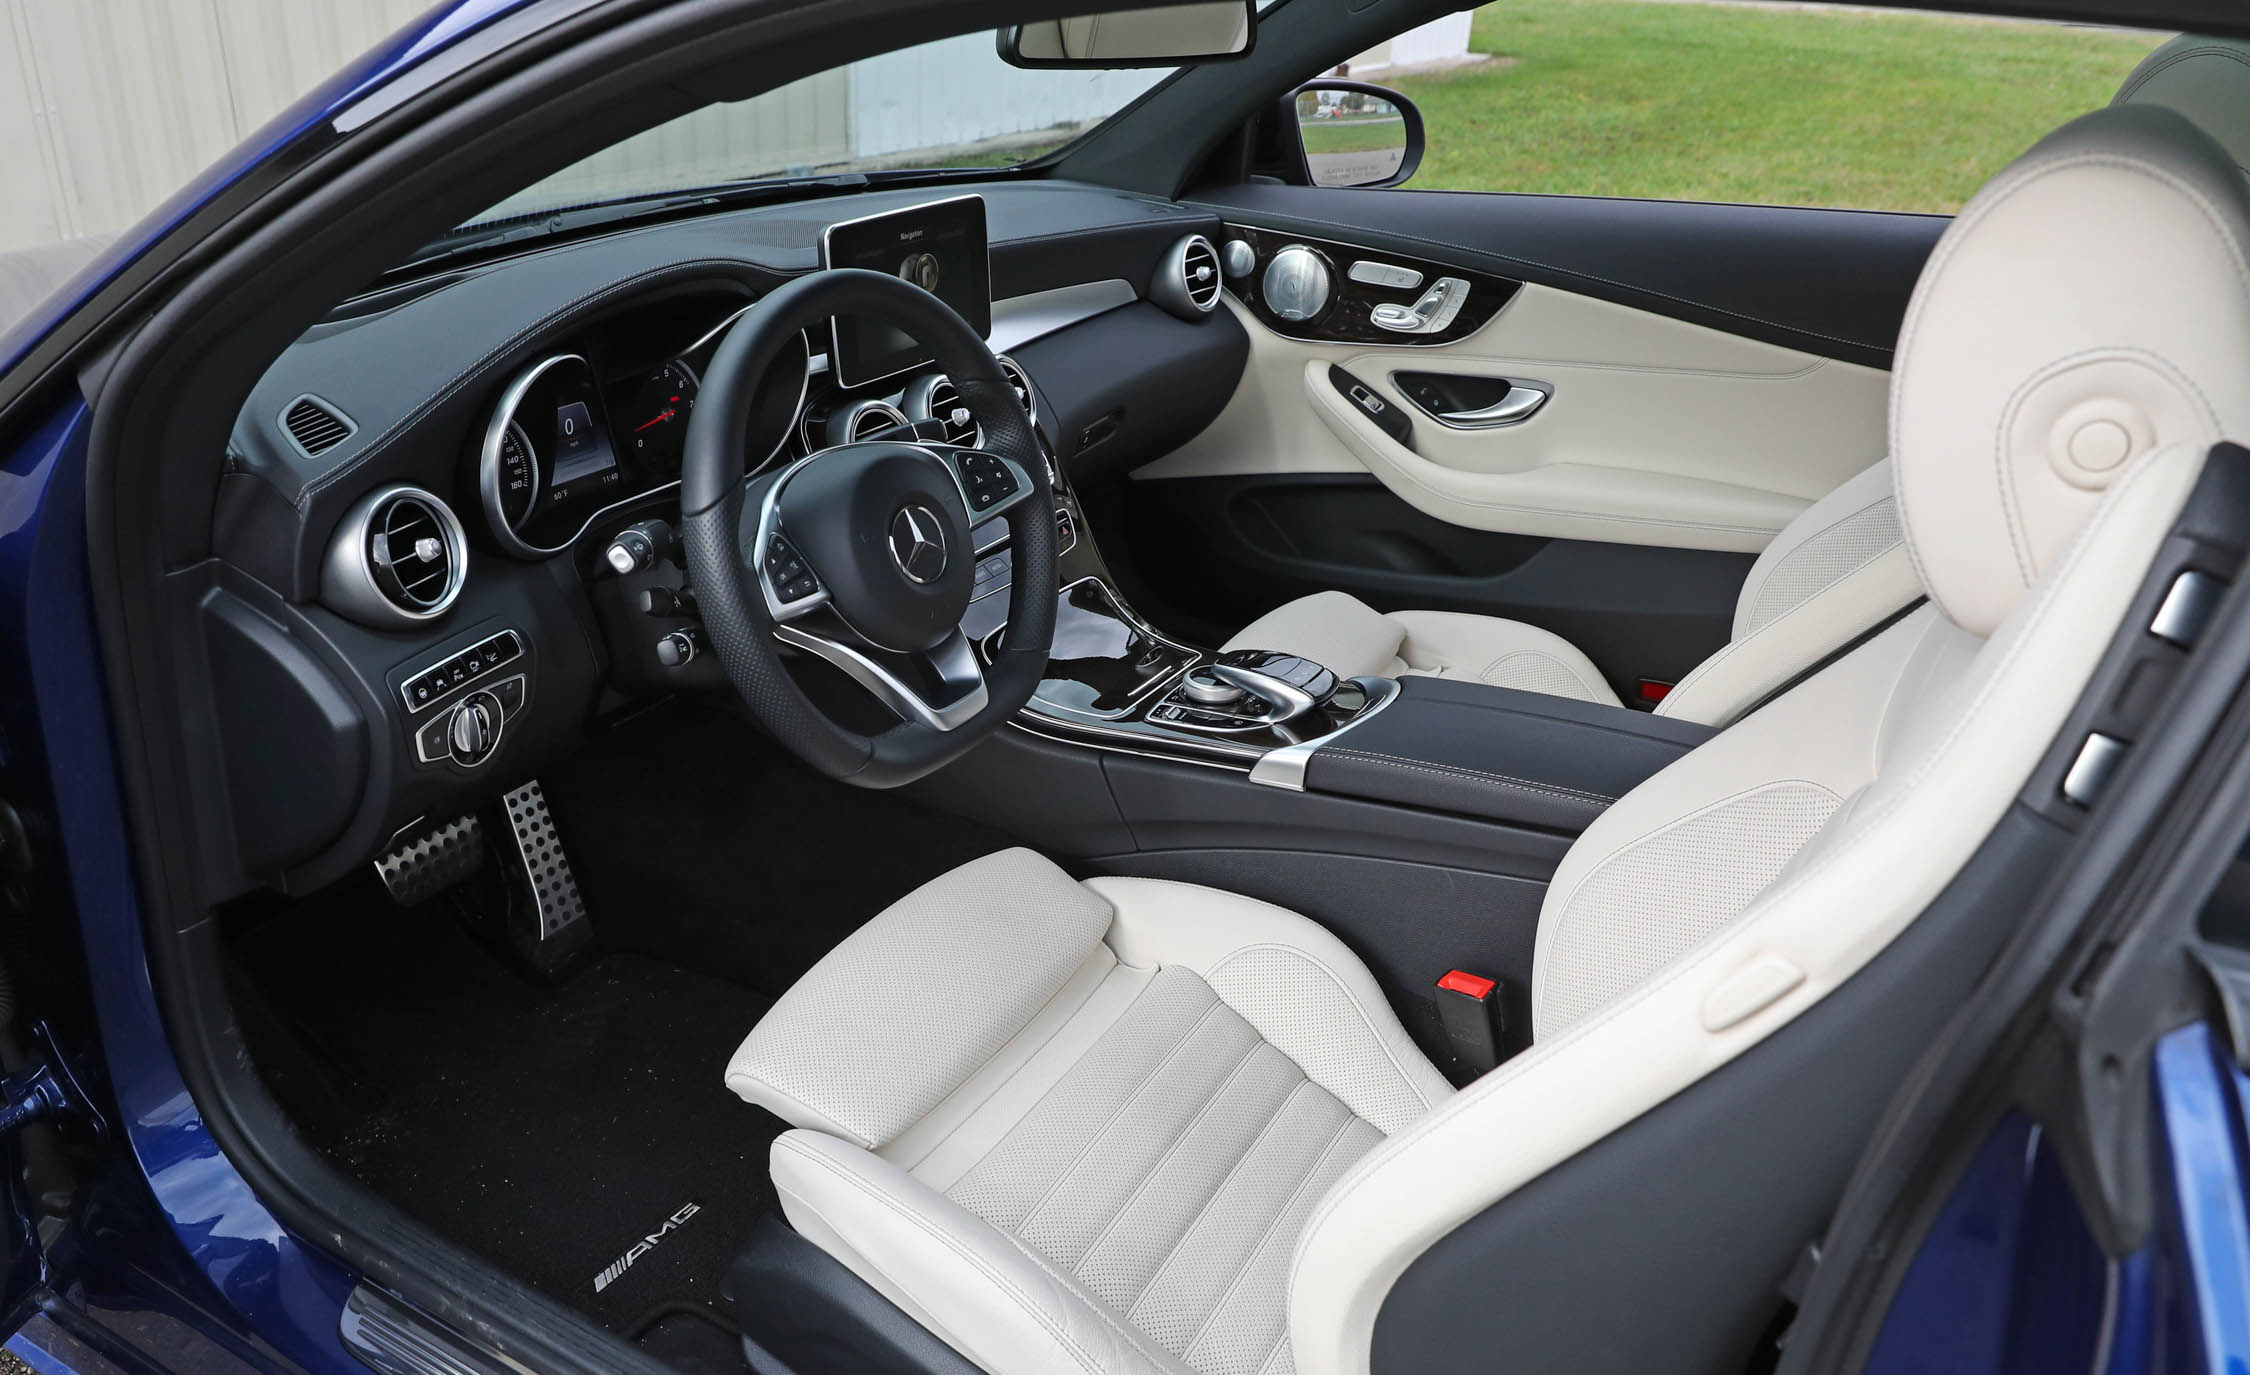 2017 Mercedes Benz C300 4MATIC Coupe Interior Front (Photo 26 of 44)